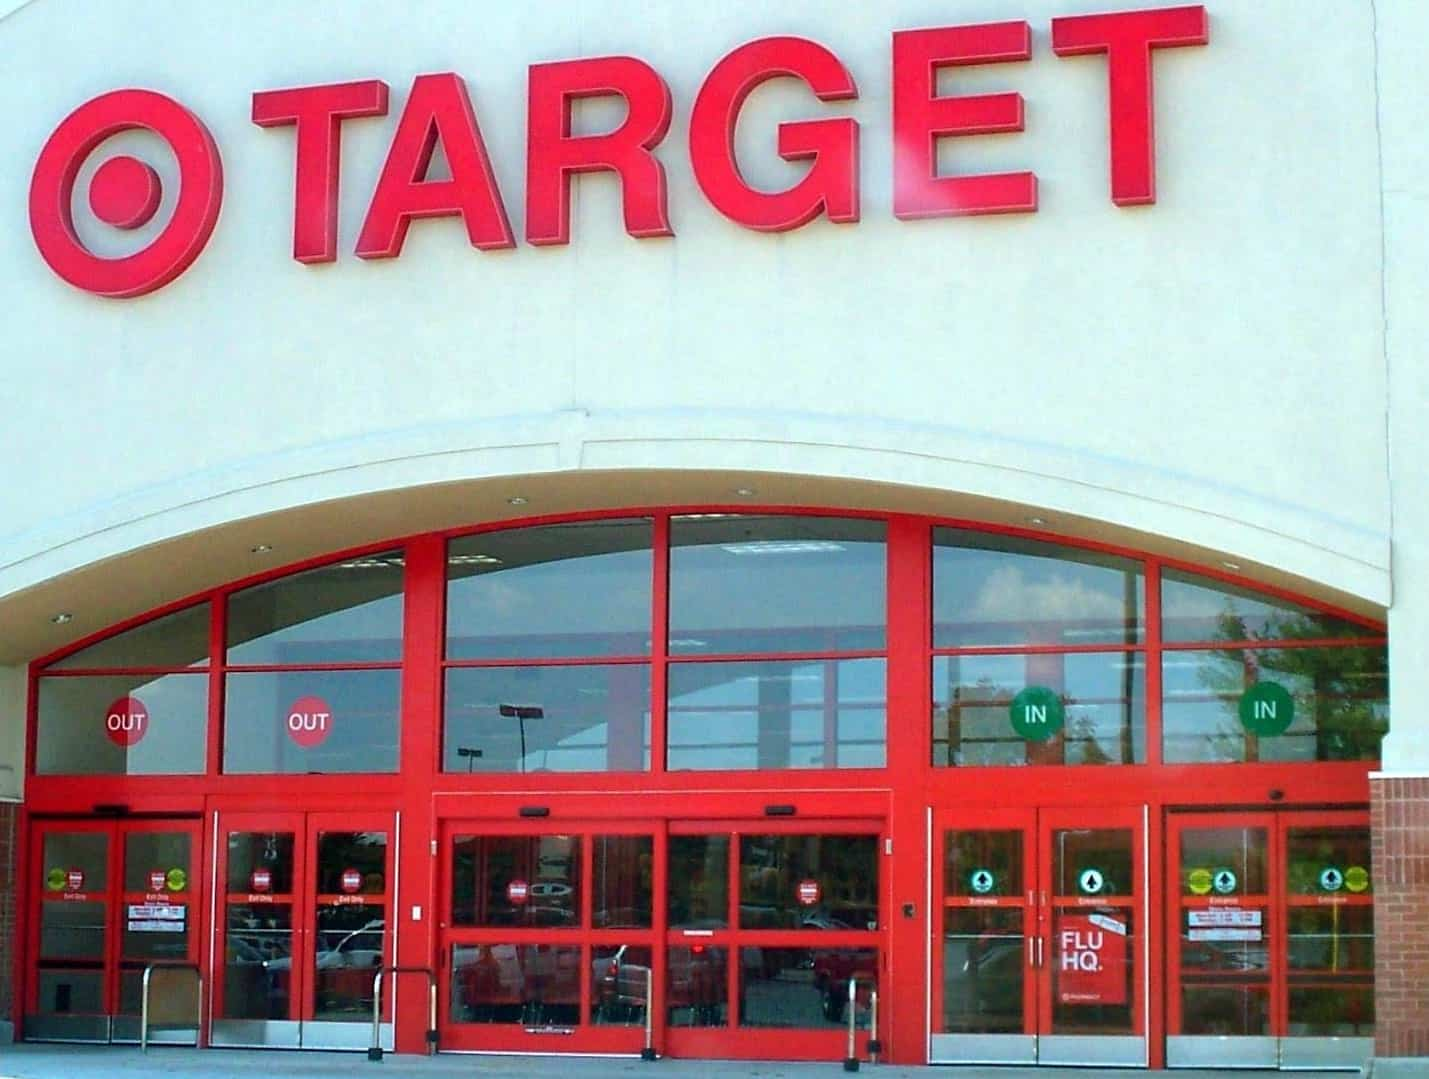 how old do I have to be to work at Target